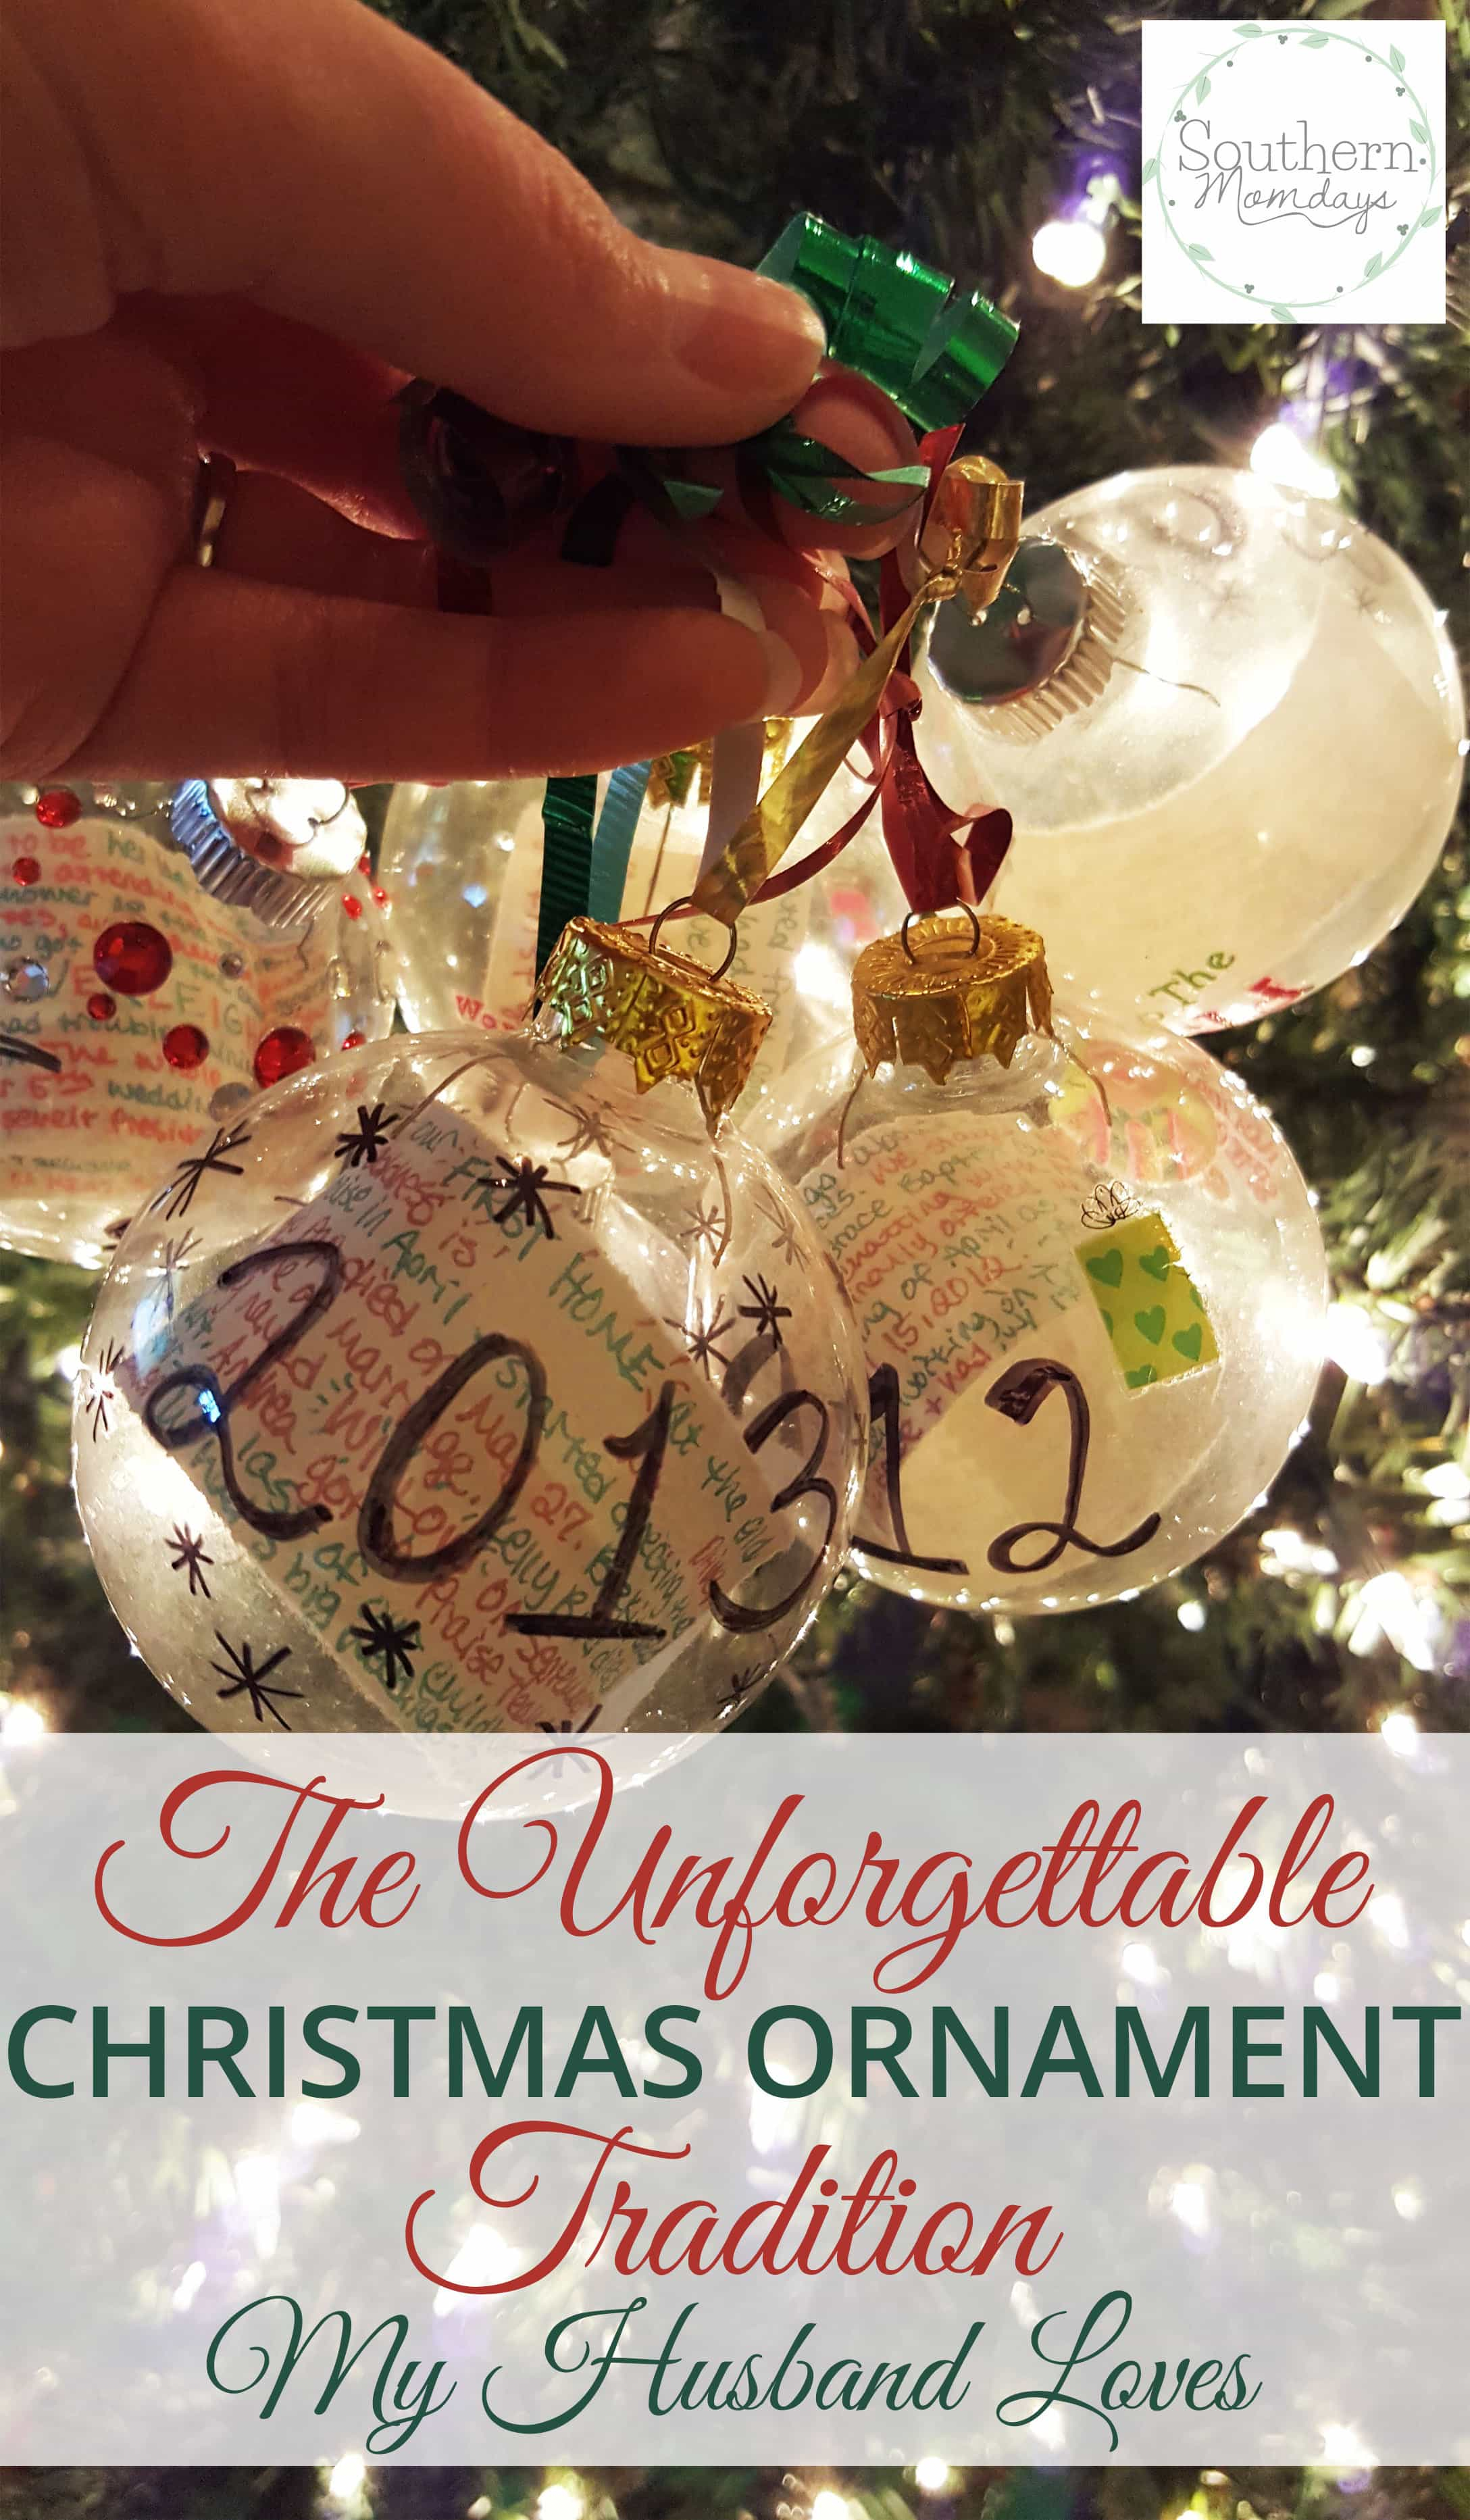 the unforgettable year in review christmas ornament tradition that my husband loves featured